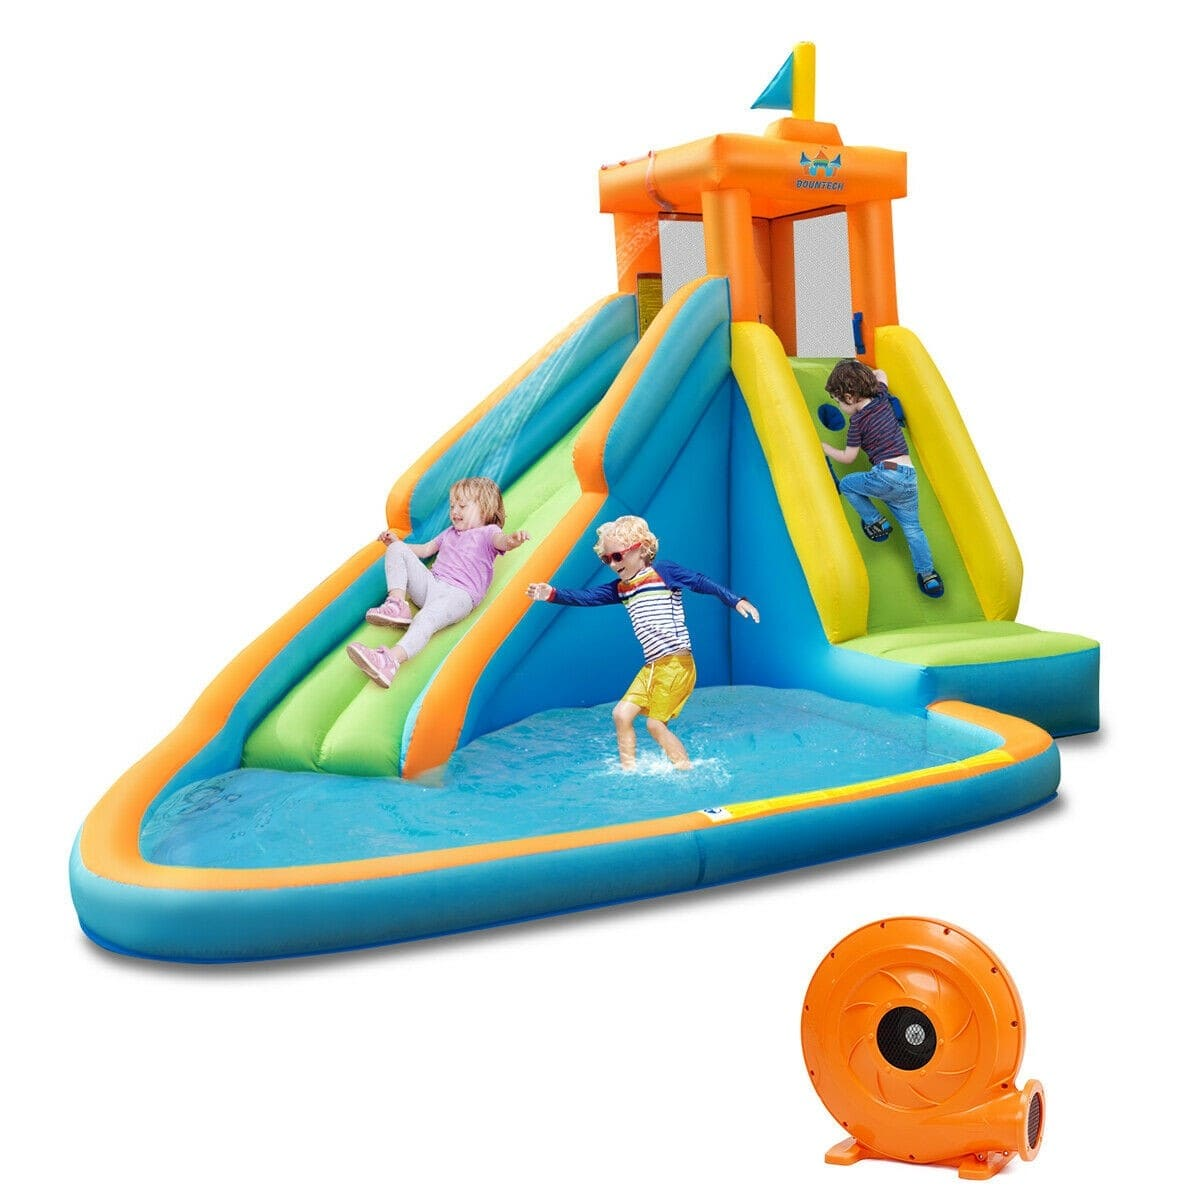 Inflatable Water Slide Kids Bounce House with 740W Blower